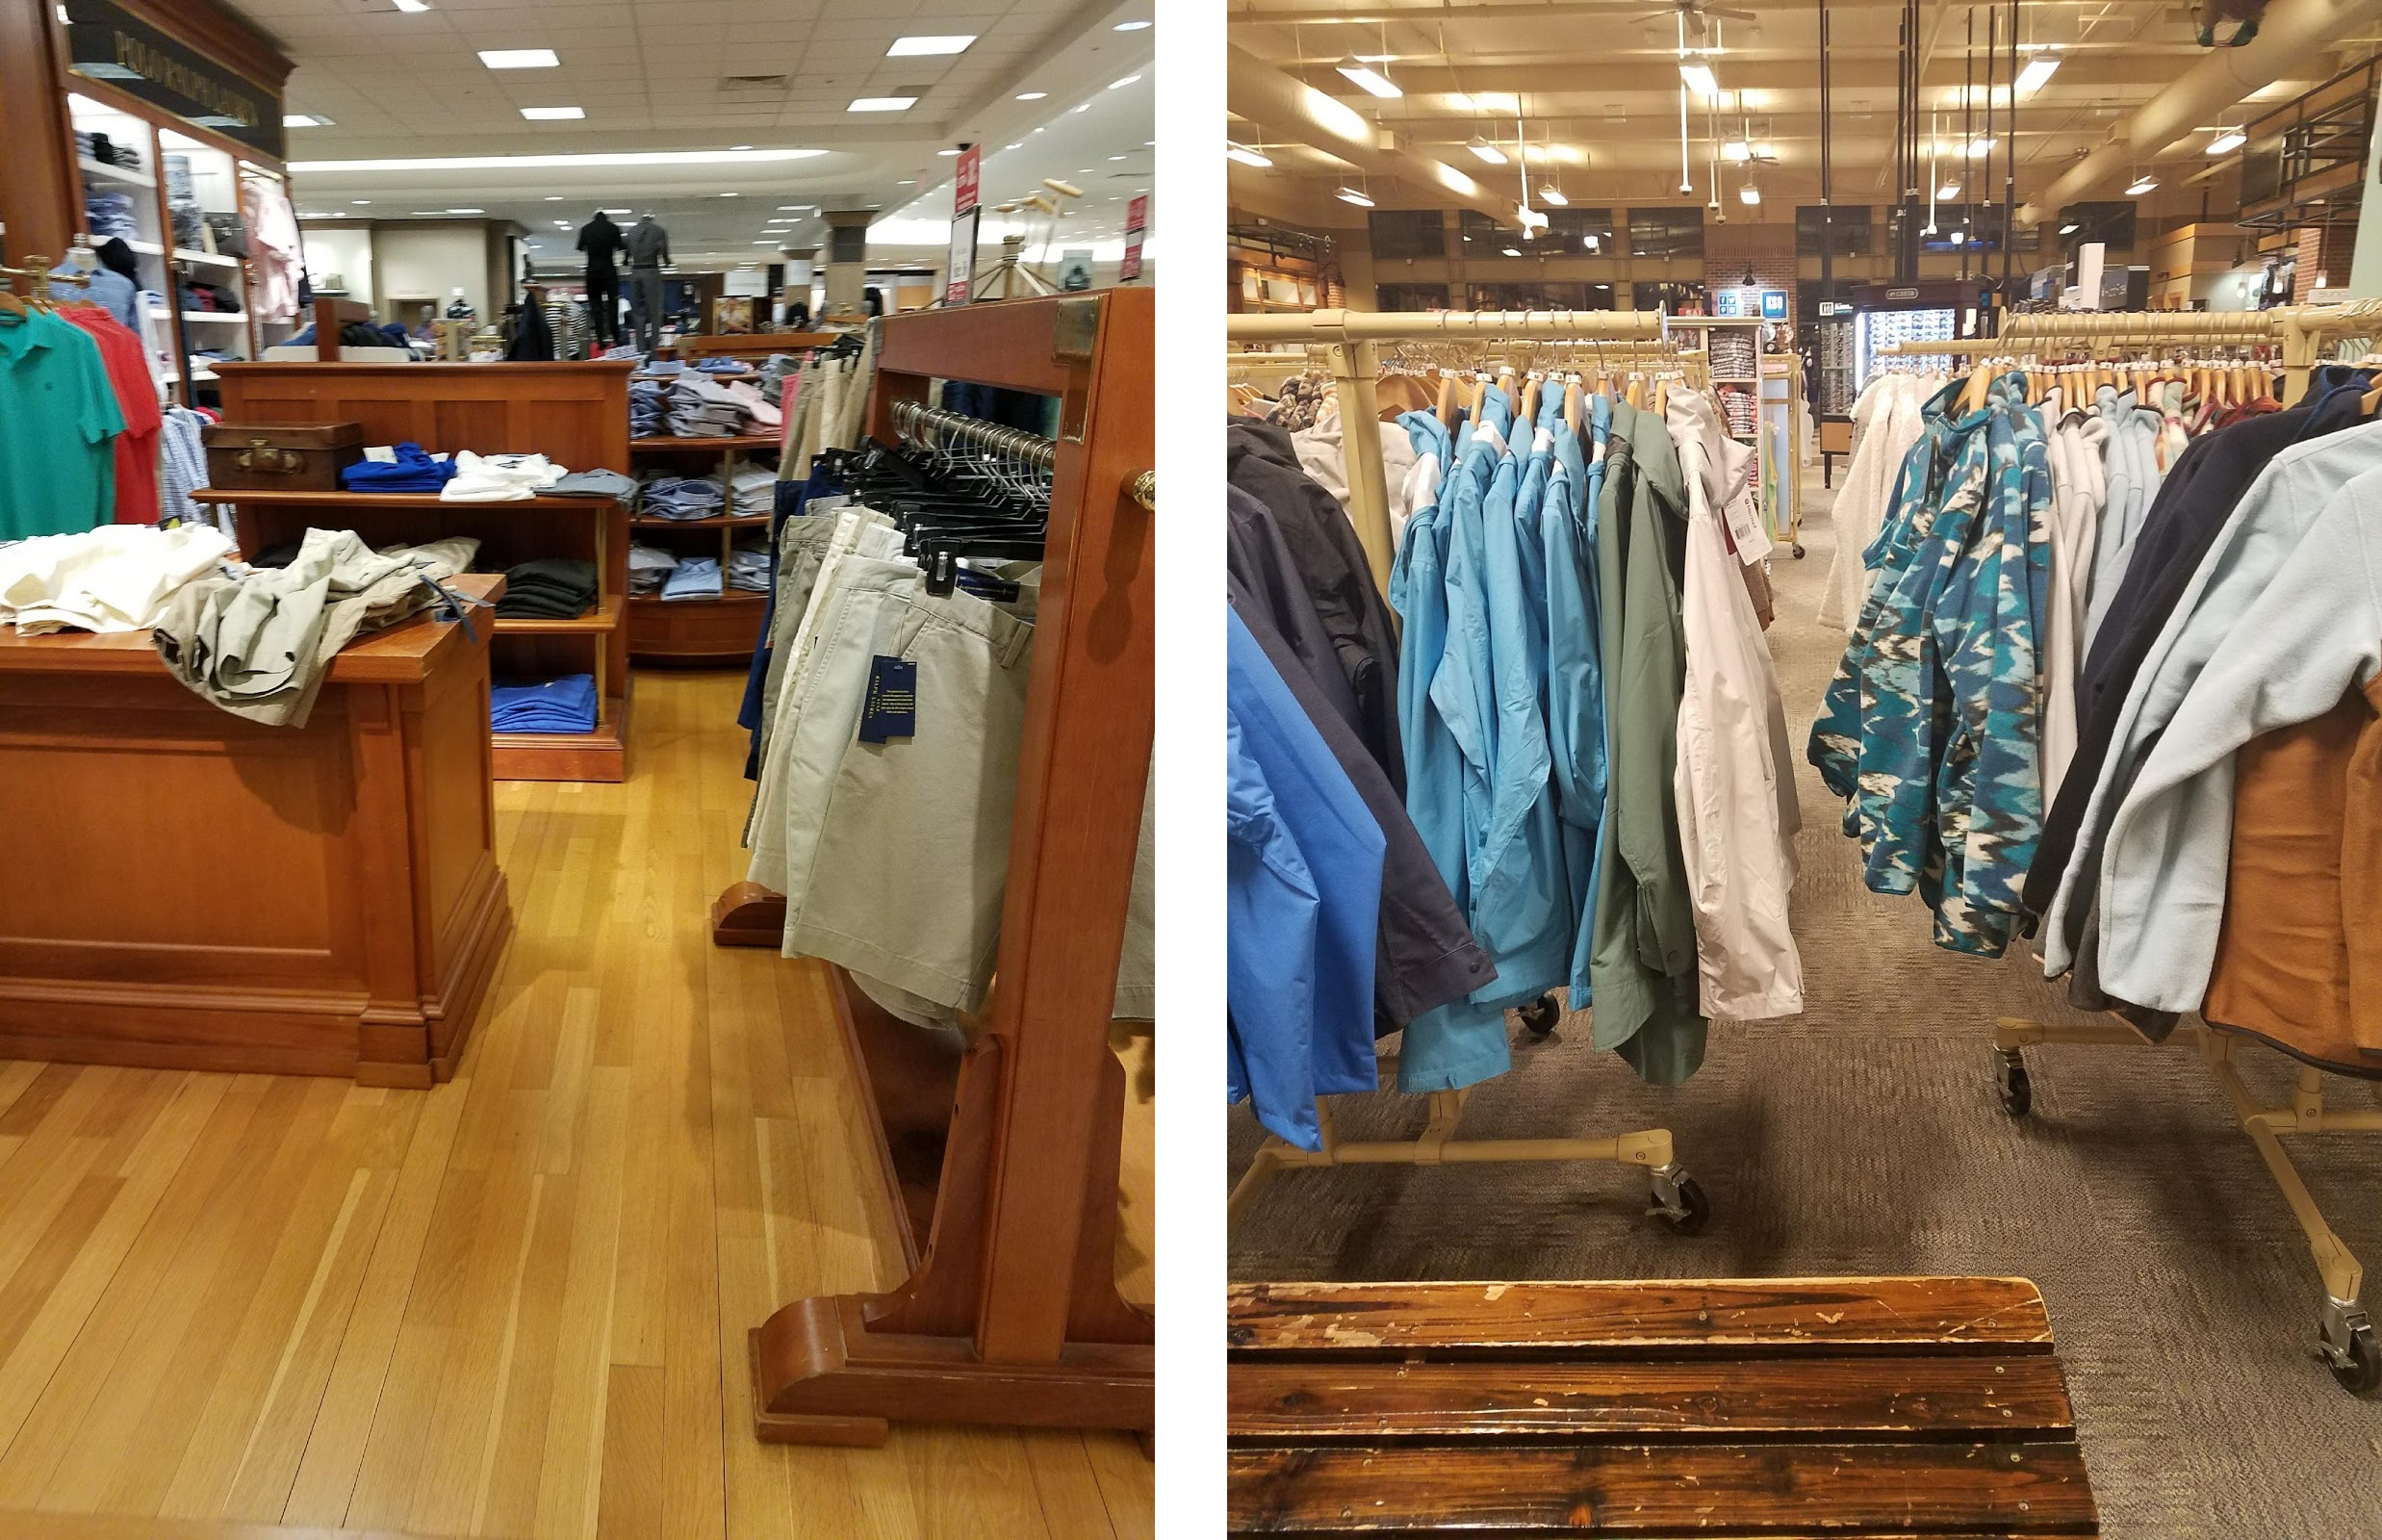 Navigating within the store - Narrow Aisles, narrow check-out lanes and difficulty in opening the doors are some main problems here.